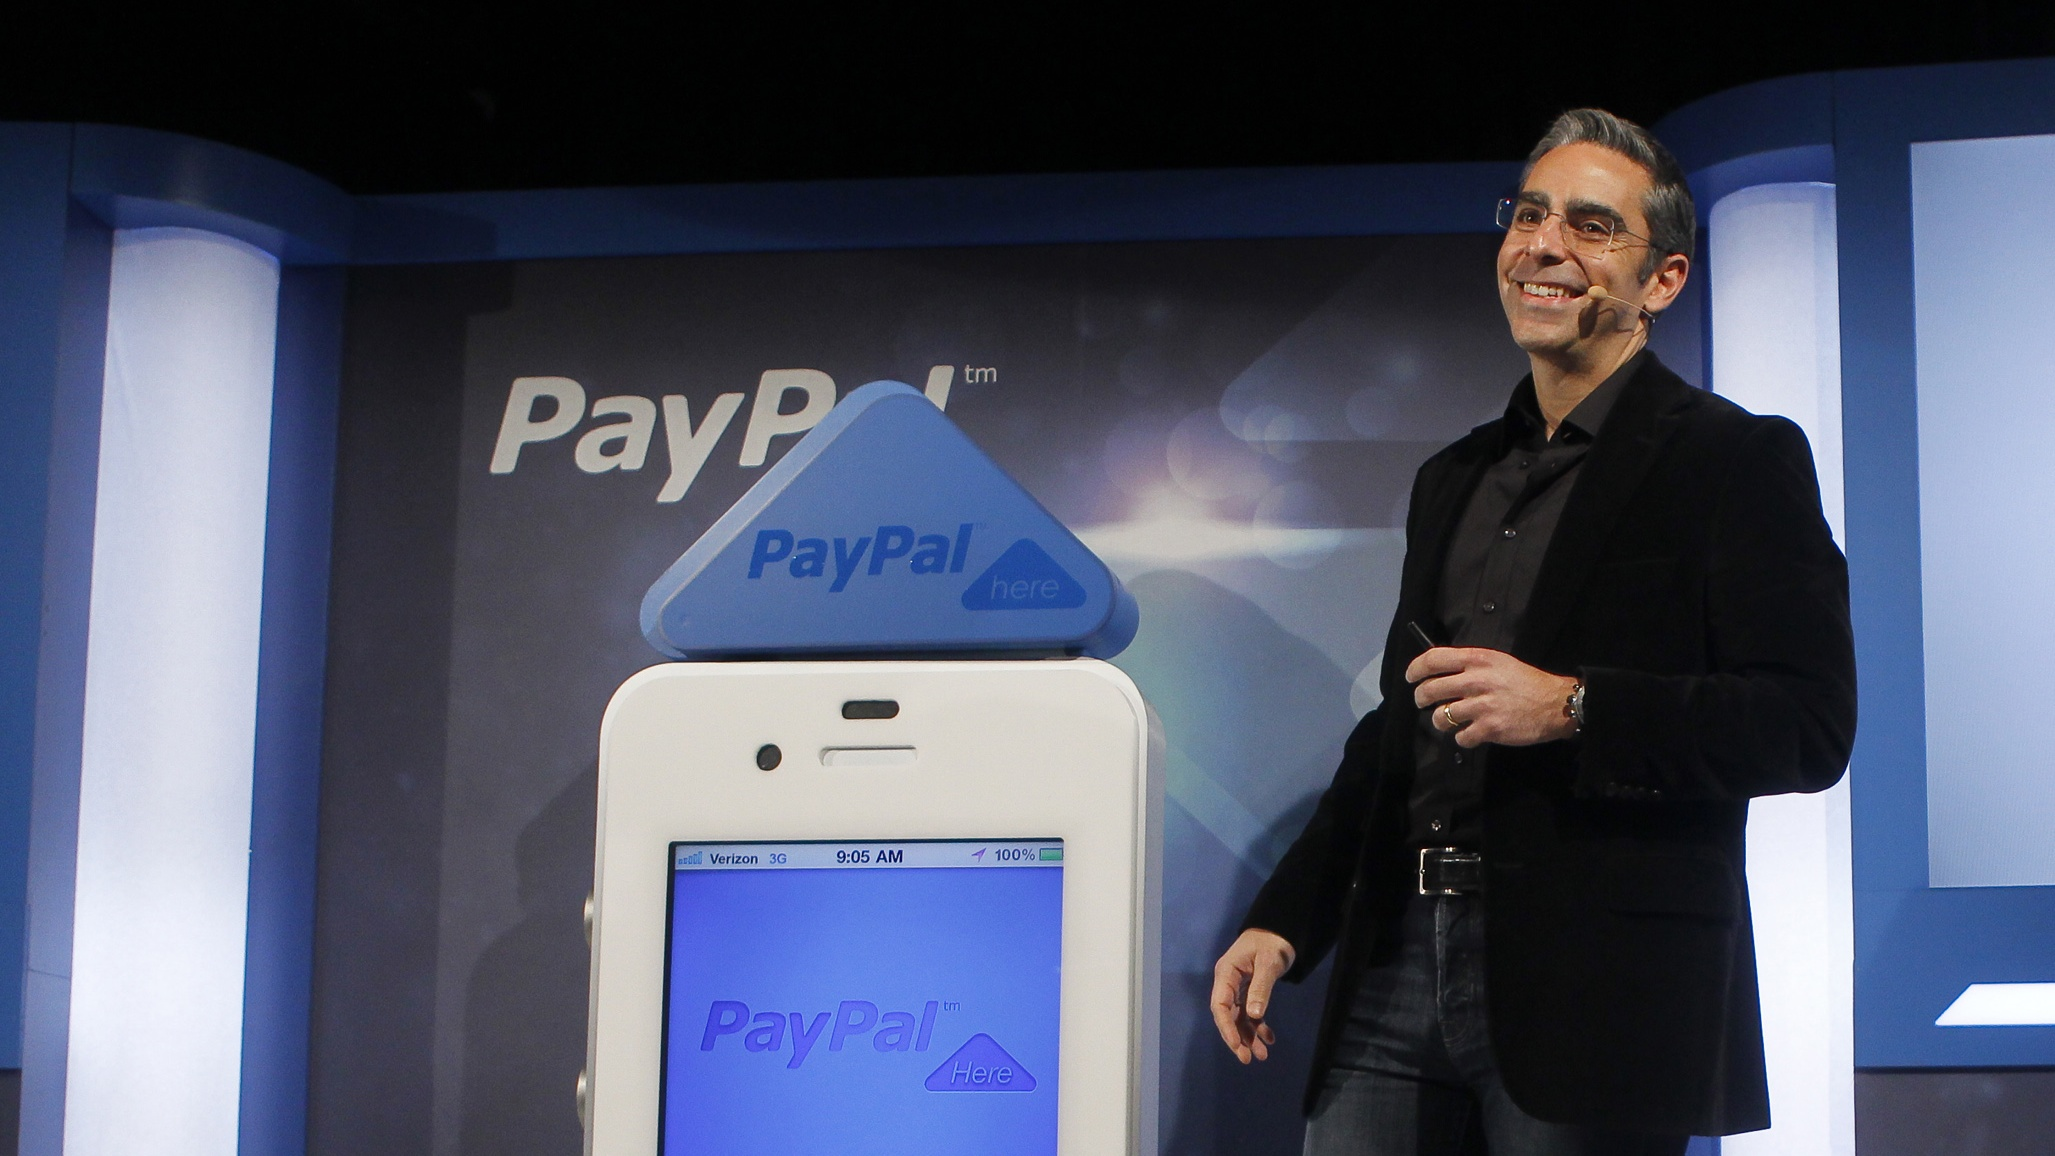 David Marcus, PayPal Vice President and General Manager of Mobile, unveils PayPal Here in San Francisco, California, March 15, 2012. PayPal Here is a free app and fully encrypted thumb-sized card reader, which turns any iPhone, and soon Android smartphone, into a mobile payment solution.  With PayPal Here, small businesses, service providers and casual sellers can send invoices or accept debit and credit cards, personal checks and PayPal using one simple product.